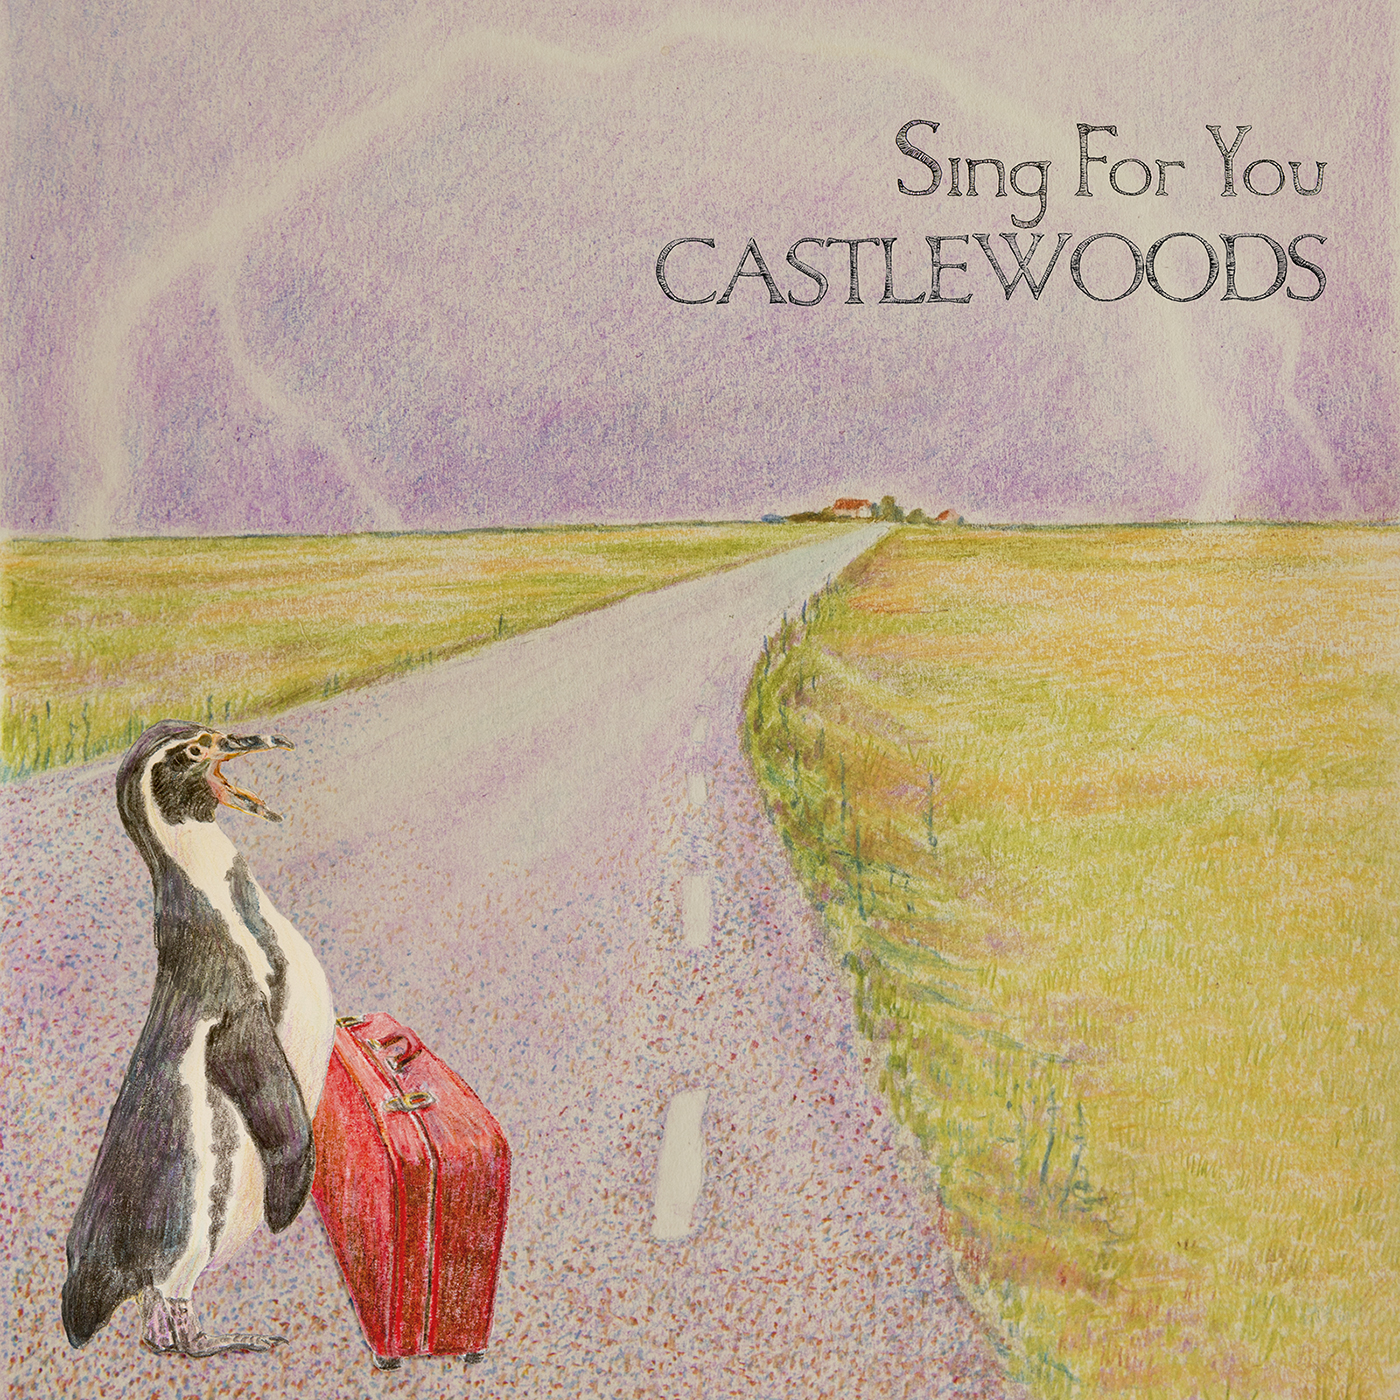 castlewoods-sing-for-you